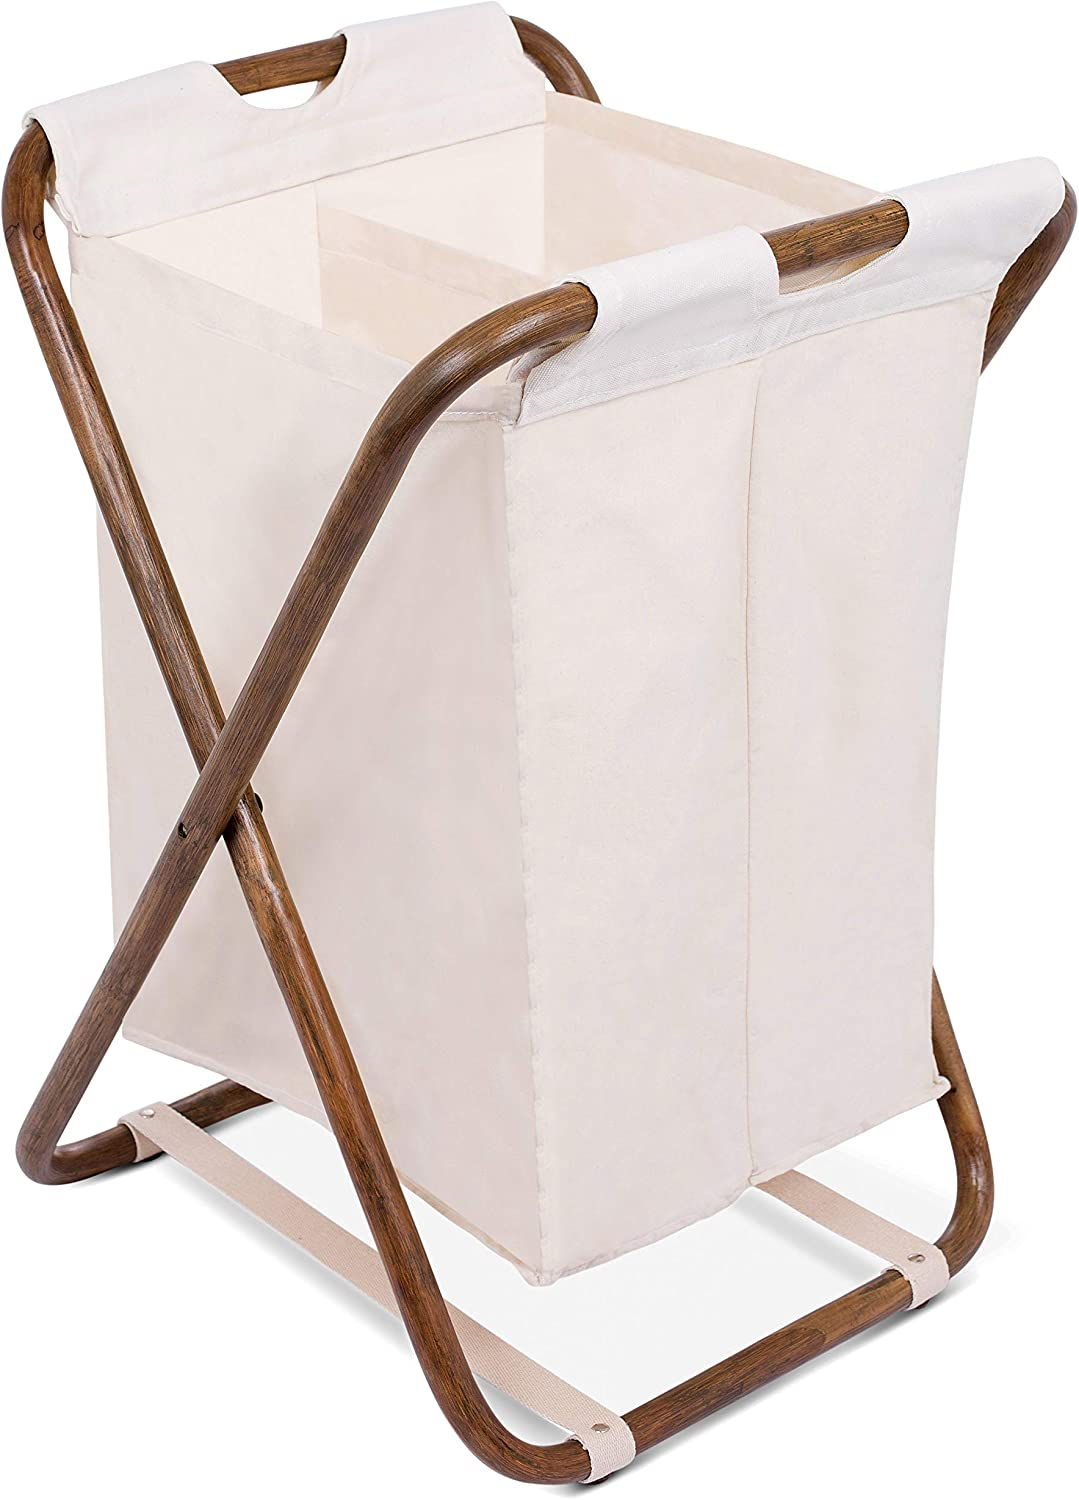 BIRDROCK HOME Double Rattan Laundry Hamper - Machine Washable Canvas Lining - Lightweight and Foldable - Divided Removable Bag - Organizer